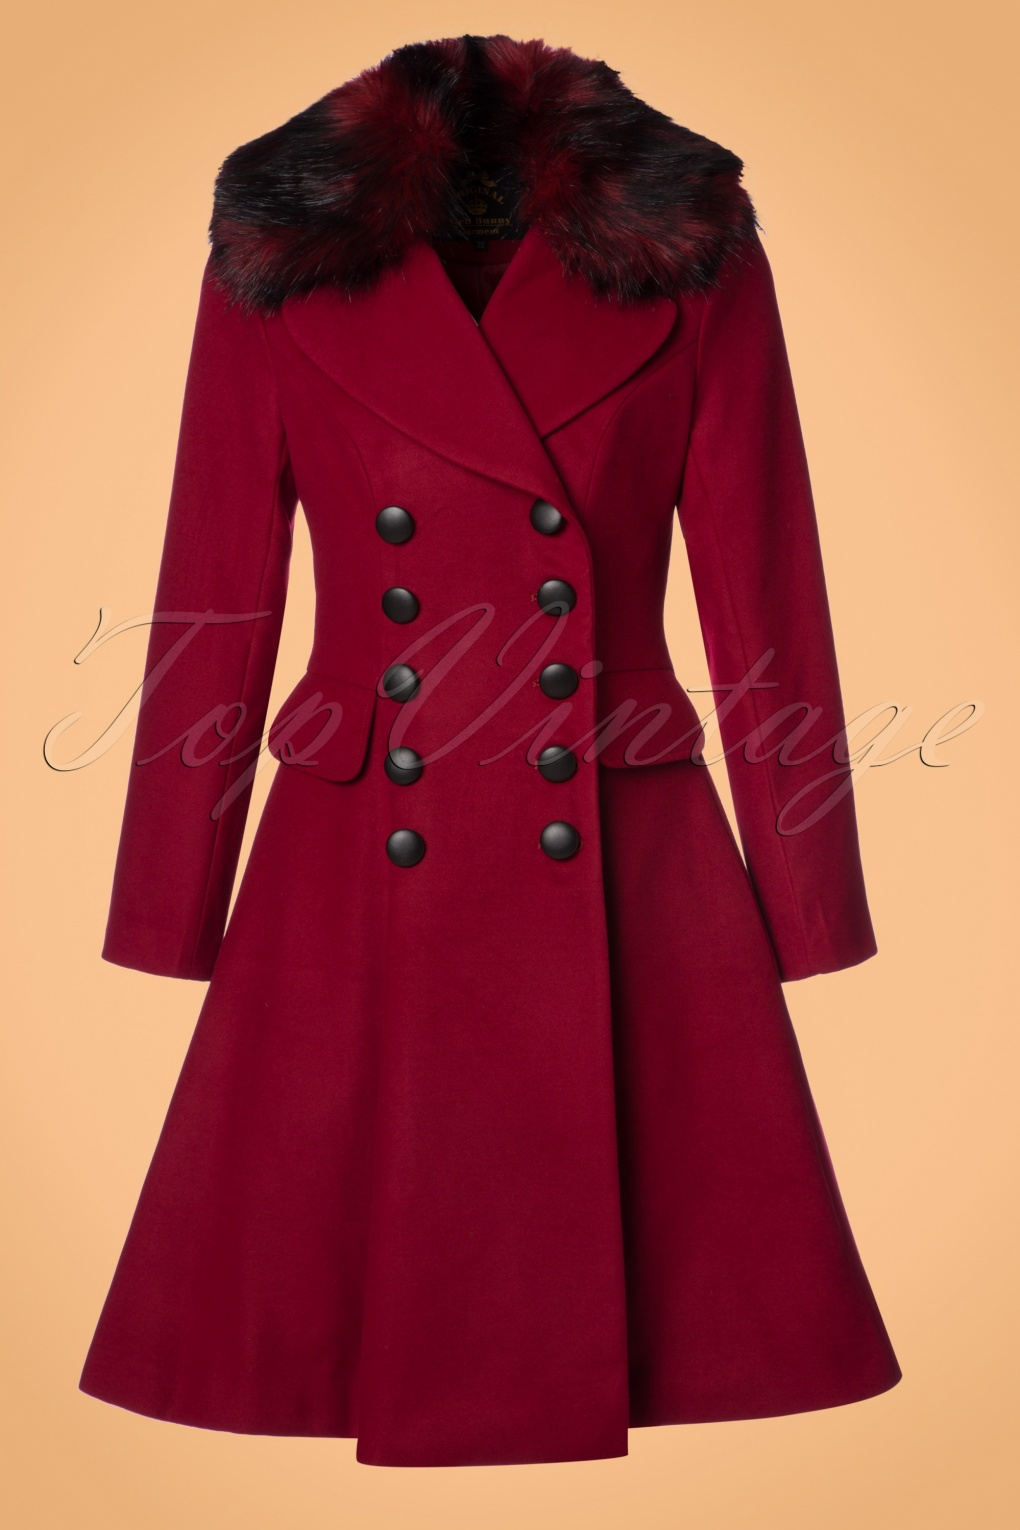 1950s Style Coats and Jackets